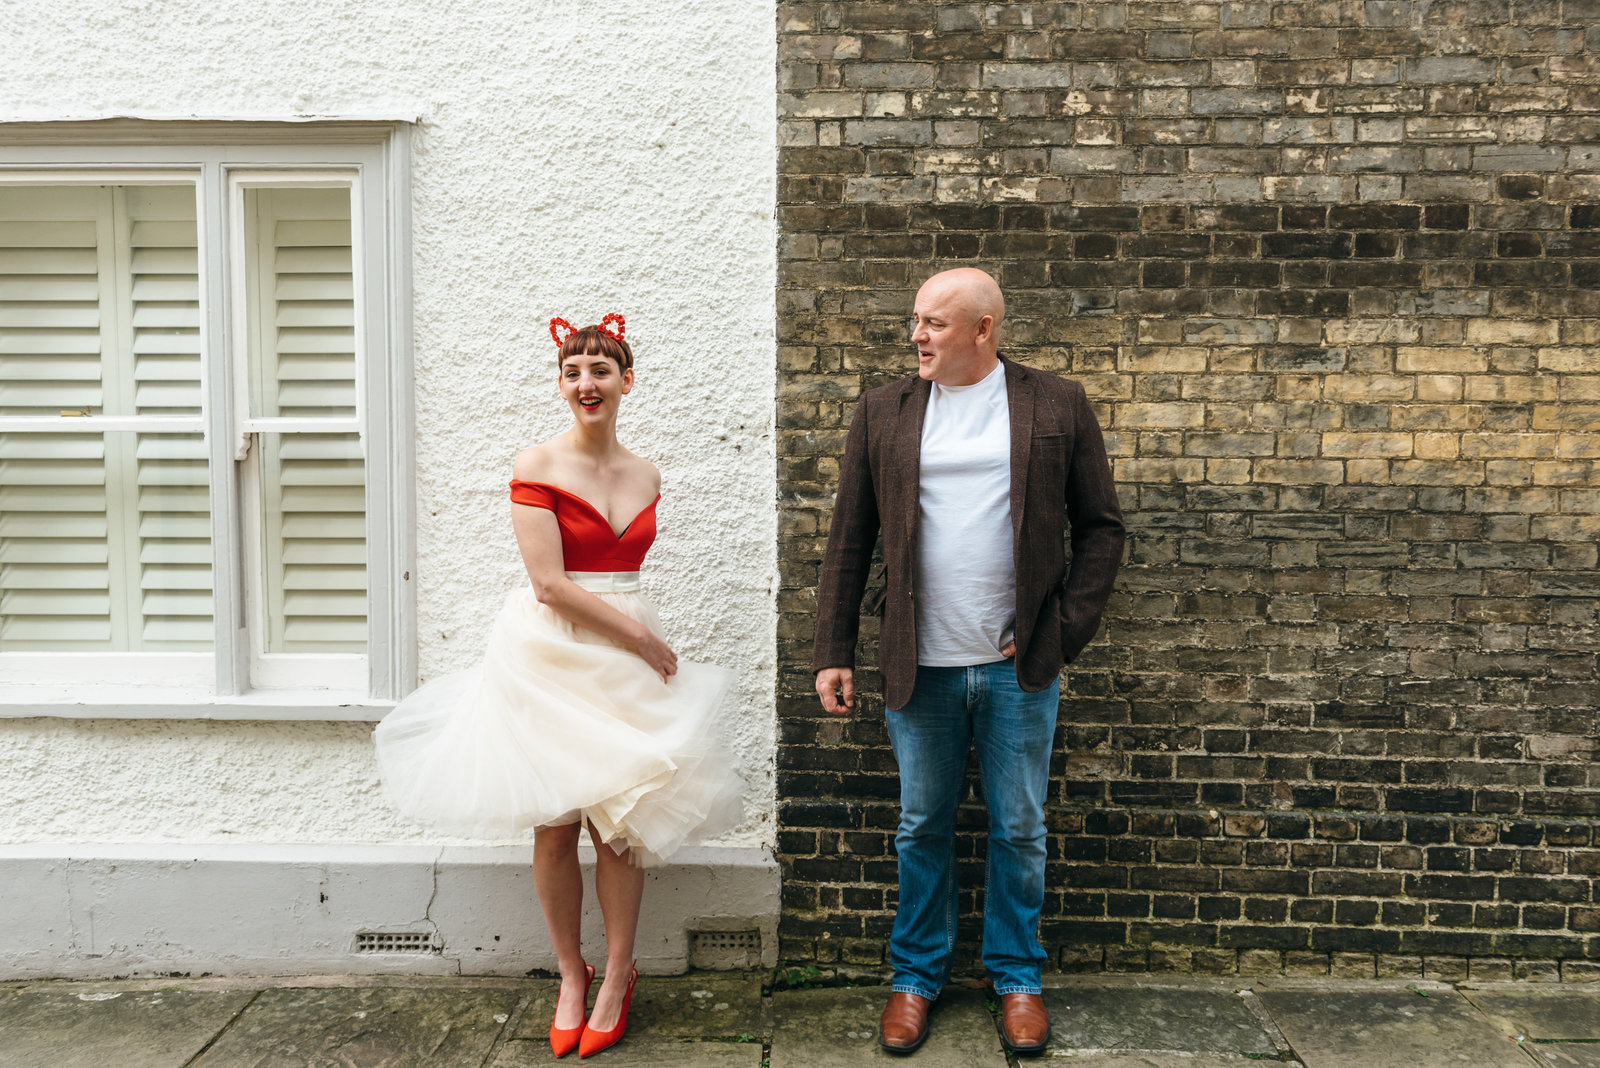 Lisa and Neil stand in front of a brick wall in Norwich. Lisa is twirling and holding her skirt and looking at the camera and Neil is looking at her and smiling.